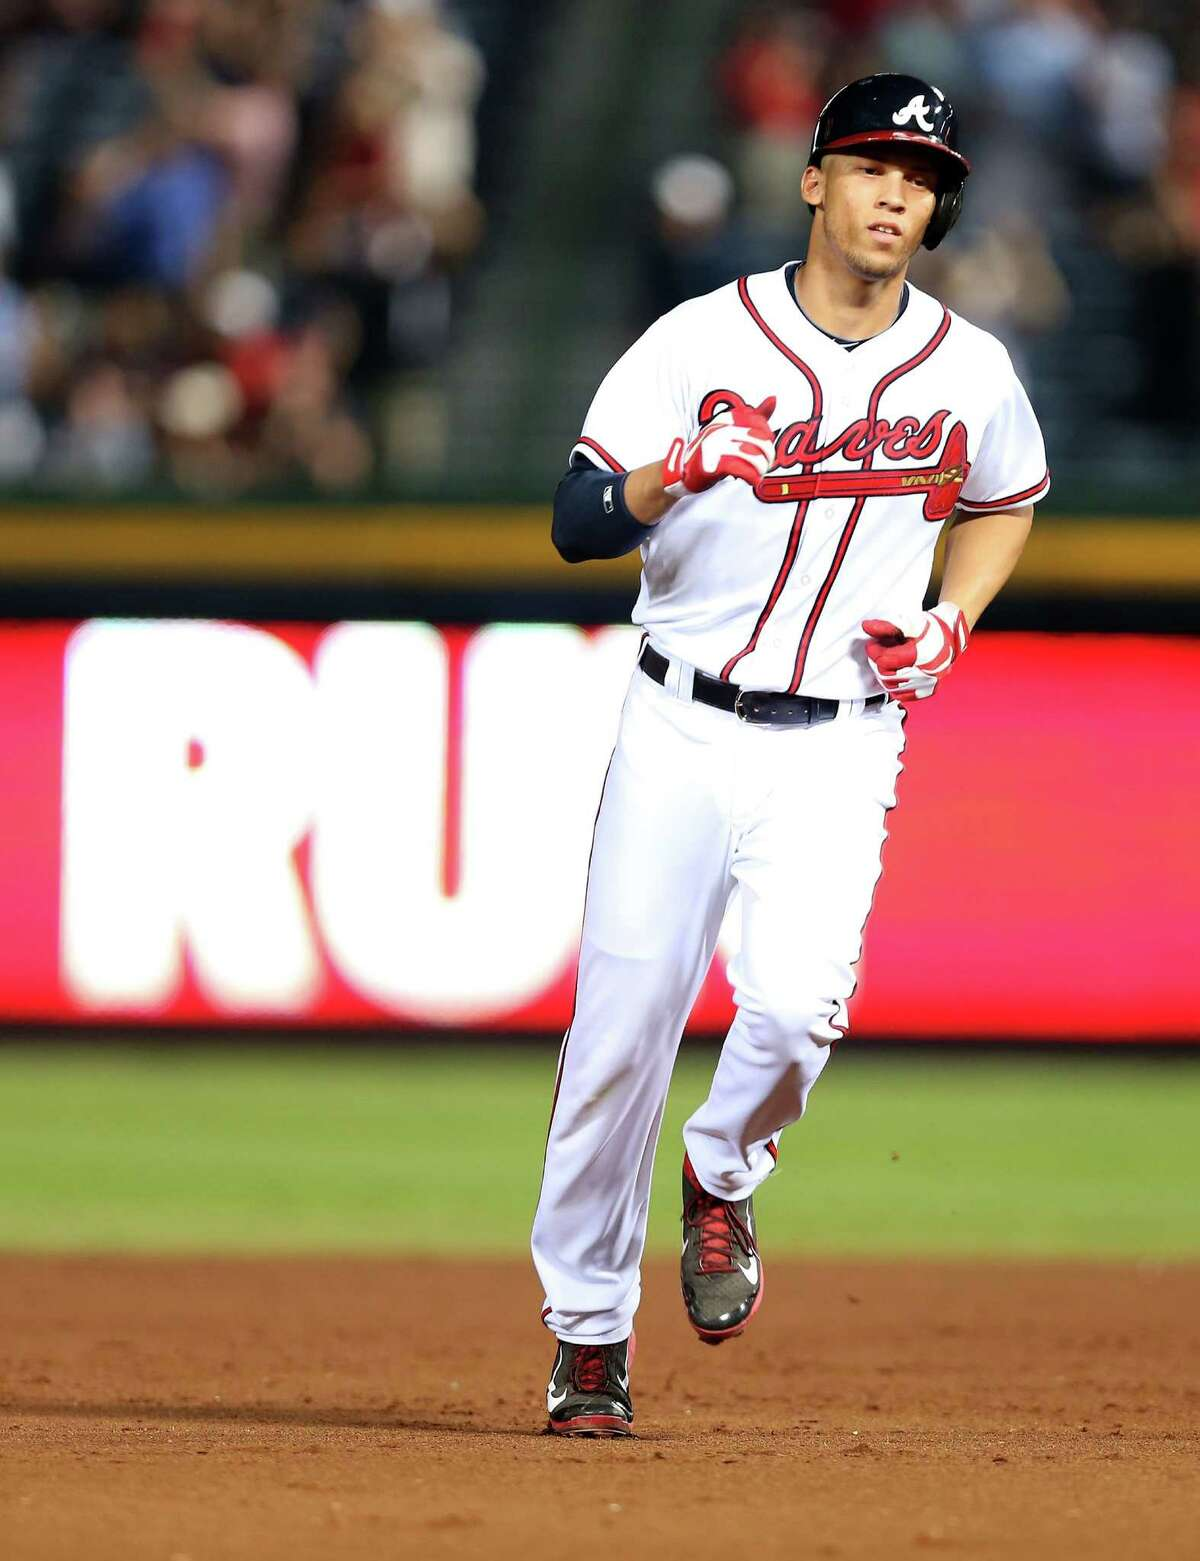 ATLANTA, GA - SEPTEMBER 03: Shortstop Andrelton Simmons #19 of the Atlanta Braves rounds the bases after hitting a 2-run go-ahead home run in the seventh inning during the game against the New York Mets at Turner Field on September 3, 2013 in Atlanta, Georgia. (Photo by Mike Zarrilli/Getty Images) ORG XMIT: 163495343